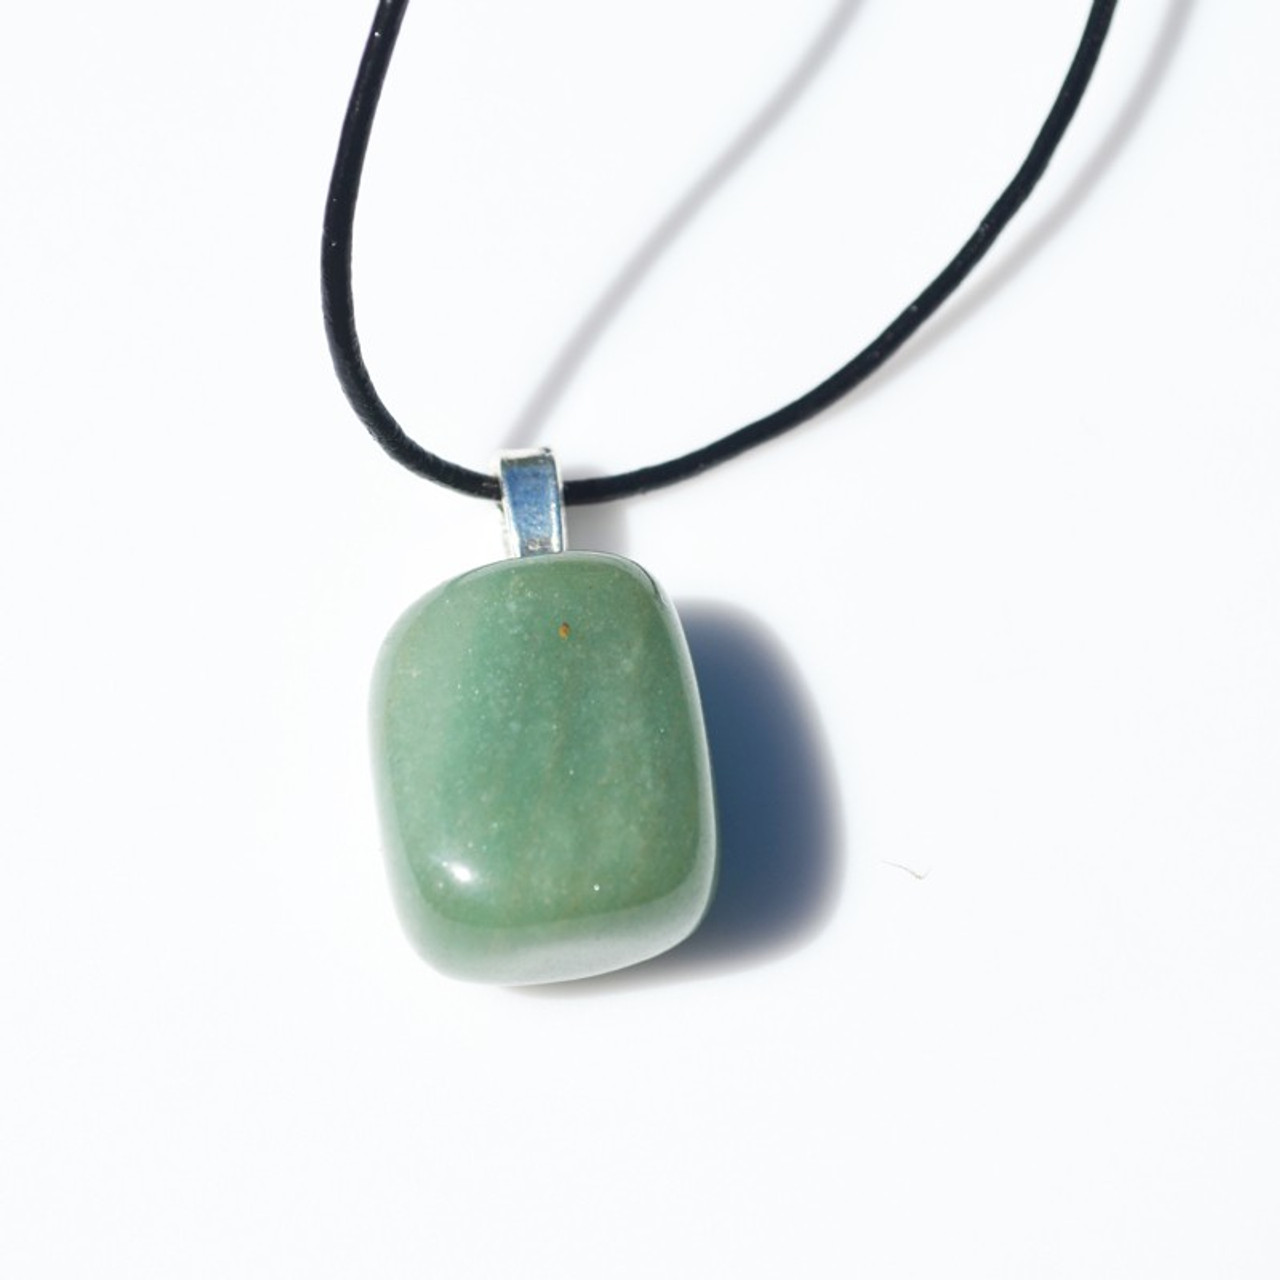 Green Aventurine Stone on a Leather Thong Necklace - Made to Order